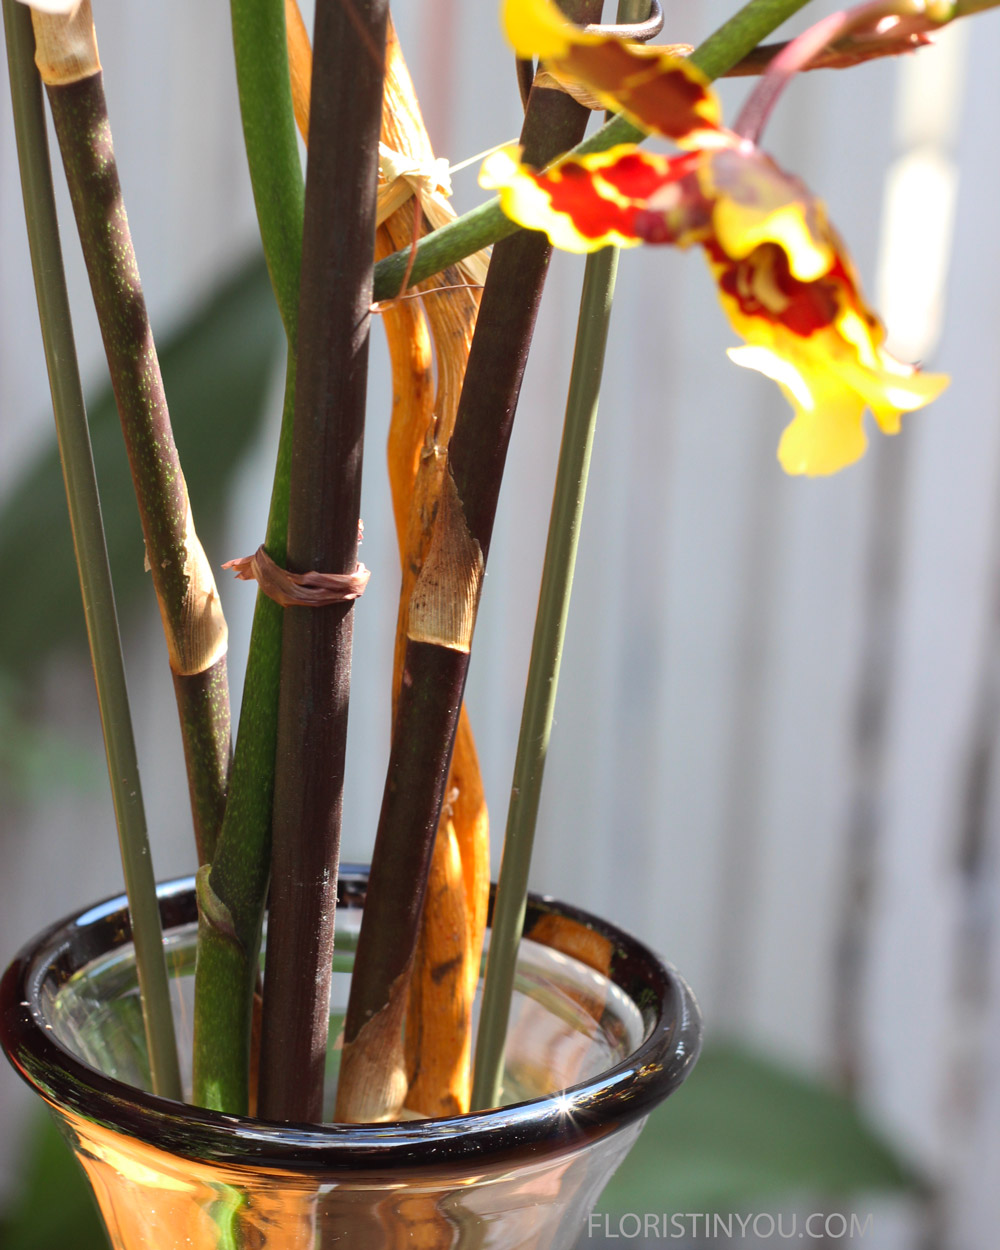 Use dark on dark stems, like so. Cut close and put knots to the back.